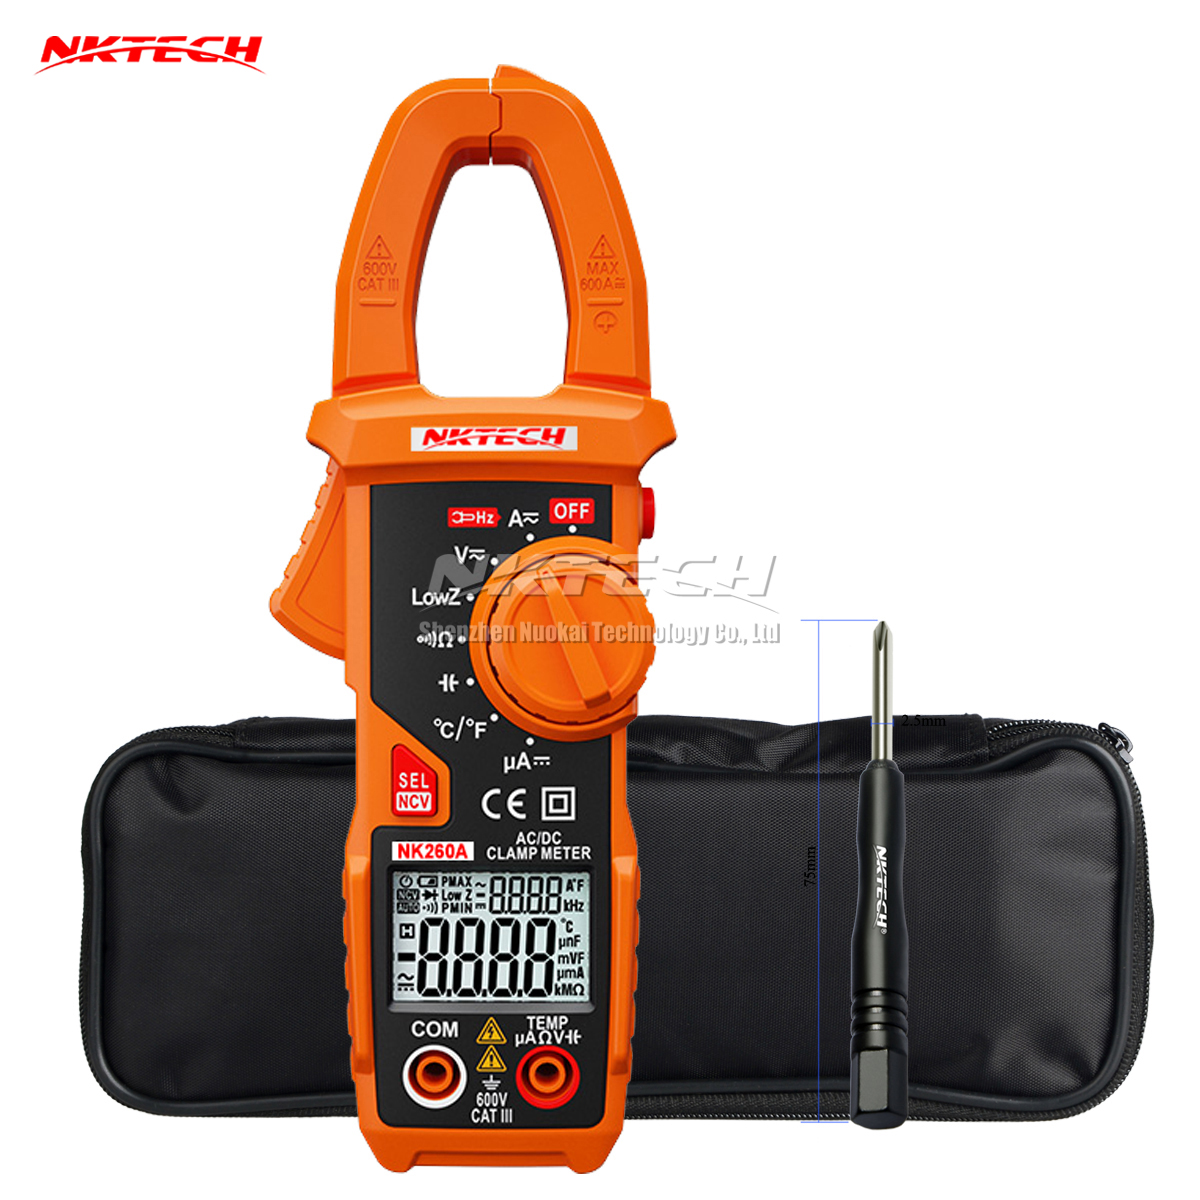 Qsunrun 858D 1Set 700W LCD repair tool 858D soldering station and electric soldering iron welding parts